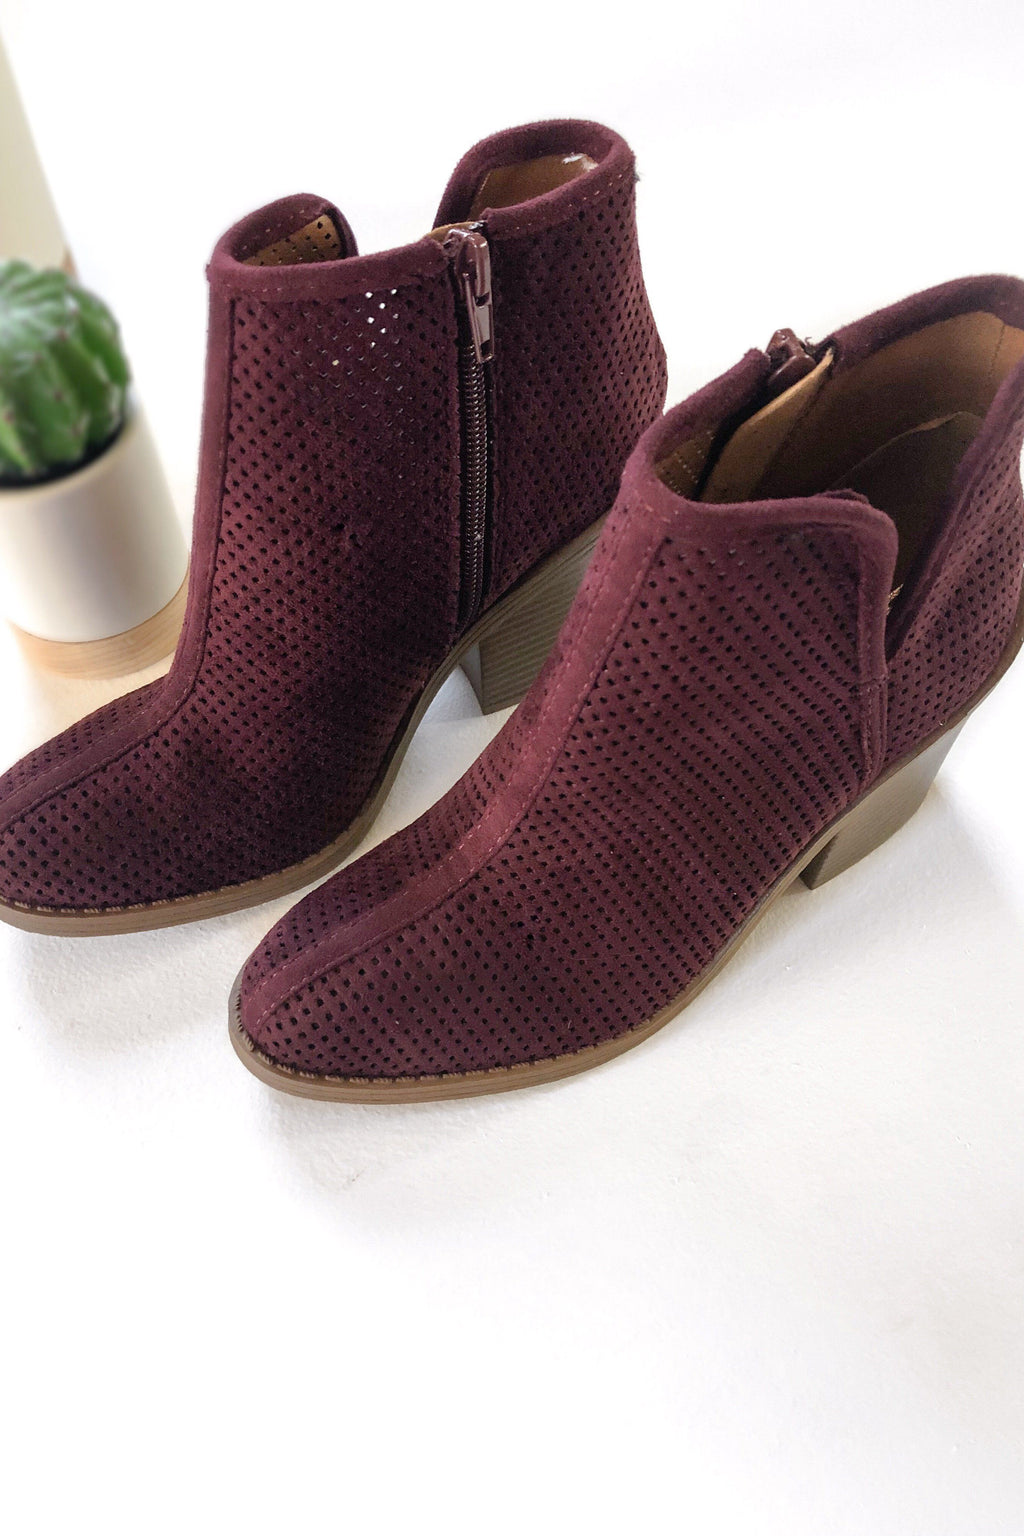 Brynn Booties - Wine - Strong Confident You